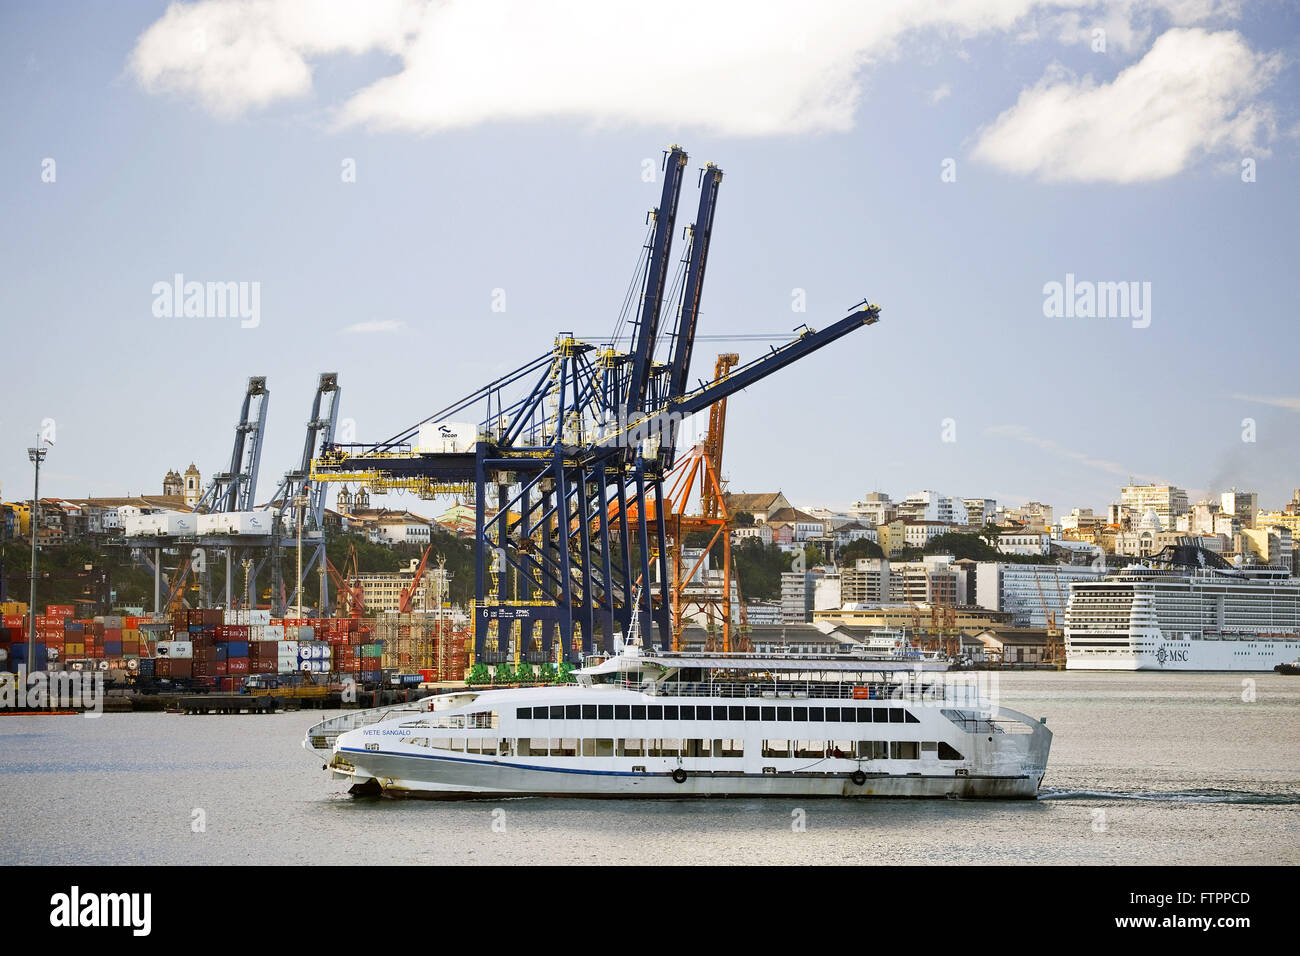 Cranes at the Port of Salvador with cruise ships - Stock Image